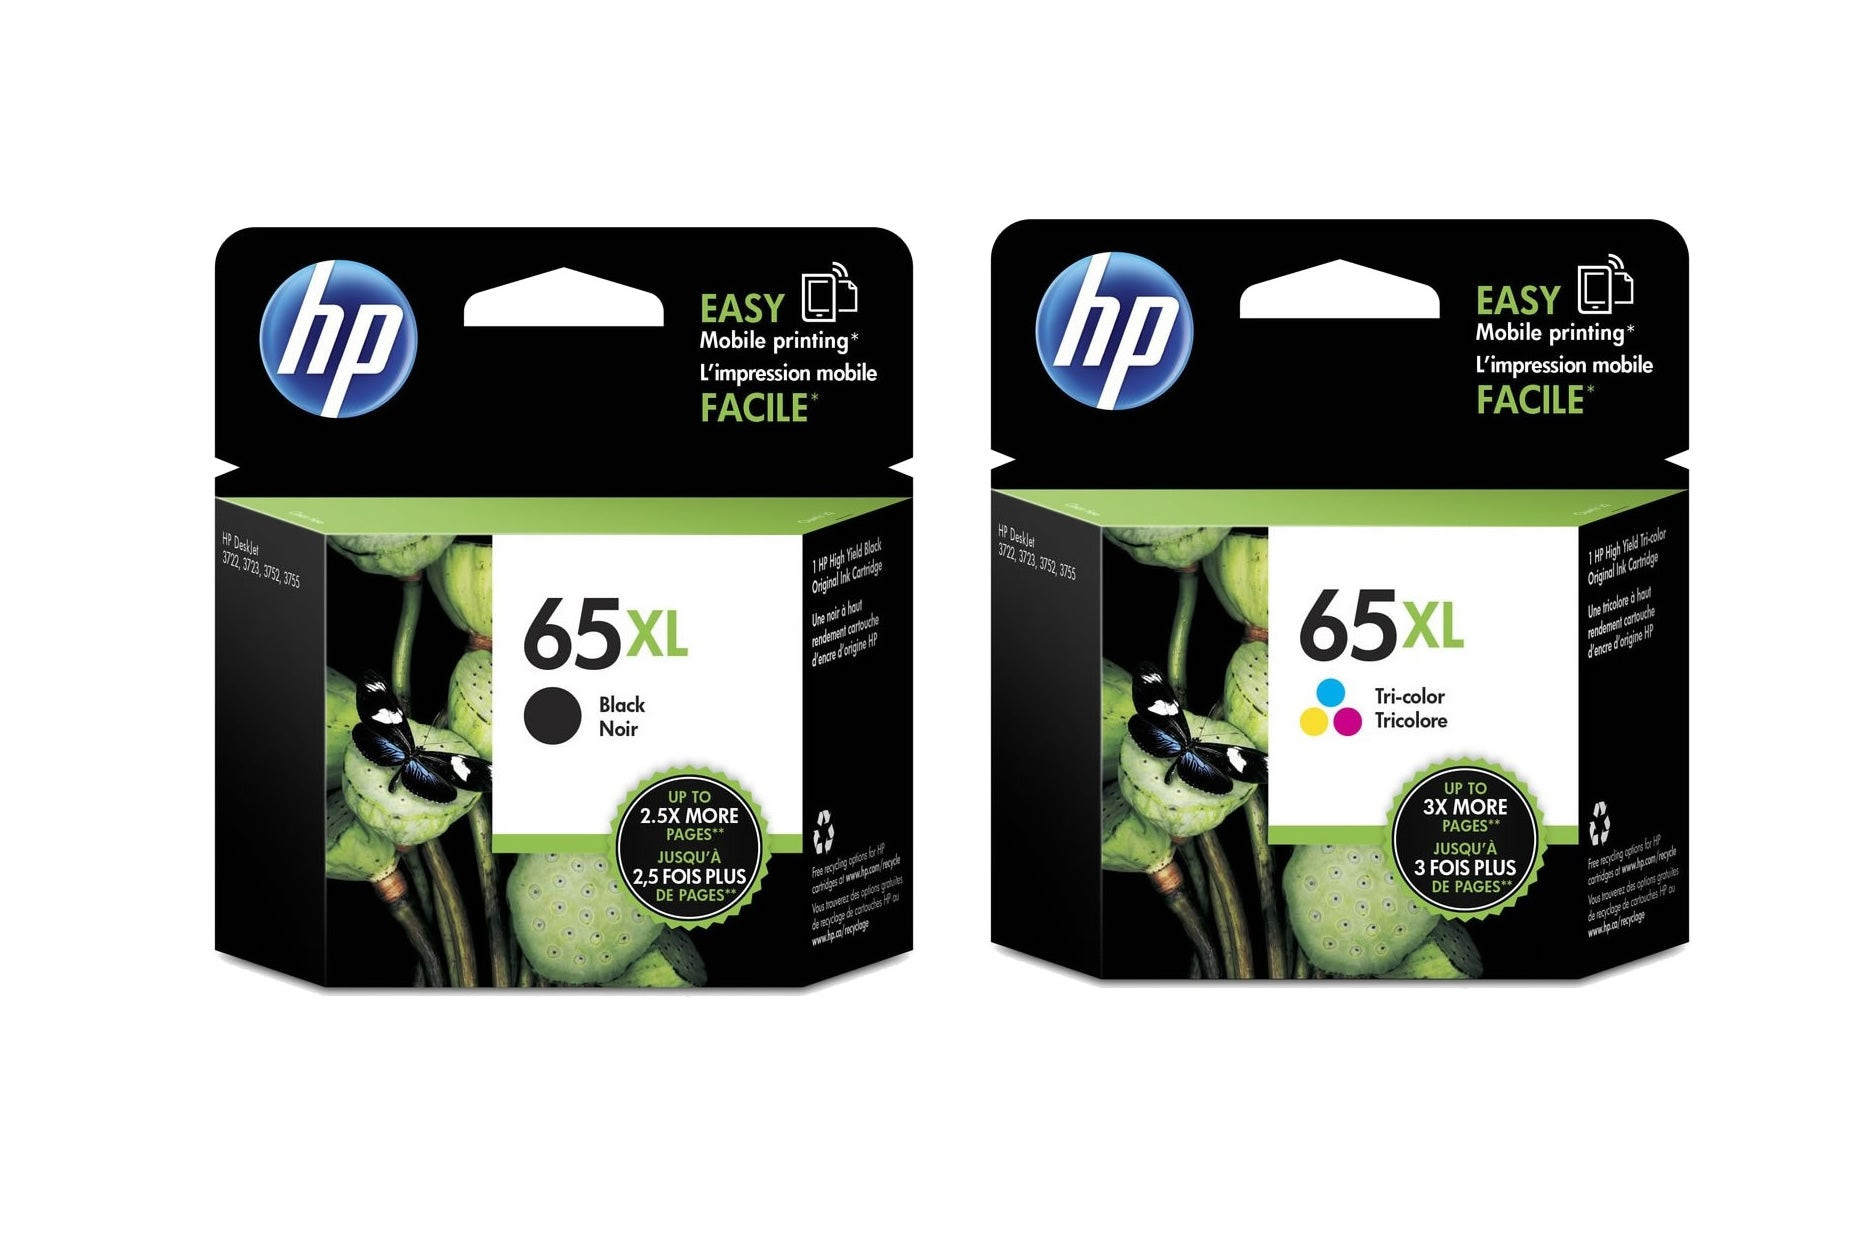 HP Black + Tri-color Ink Cartridge (for DeskJet 2220/2255/3720/3755) - Assorted [65XL]